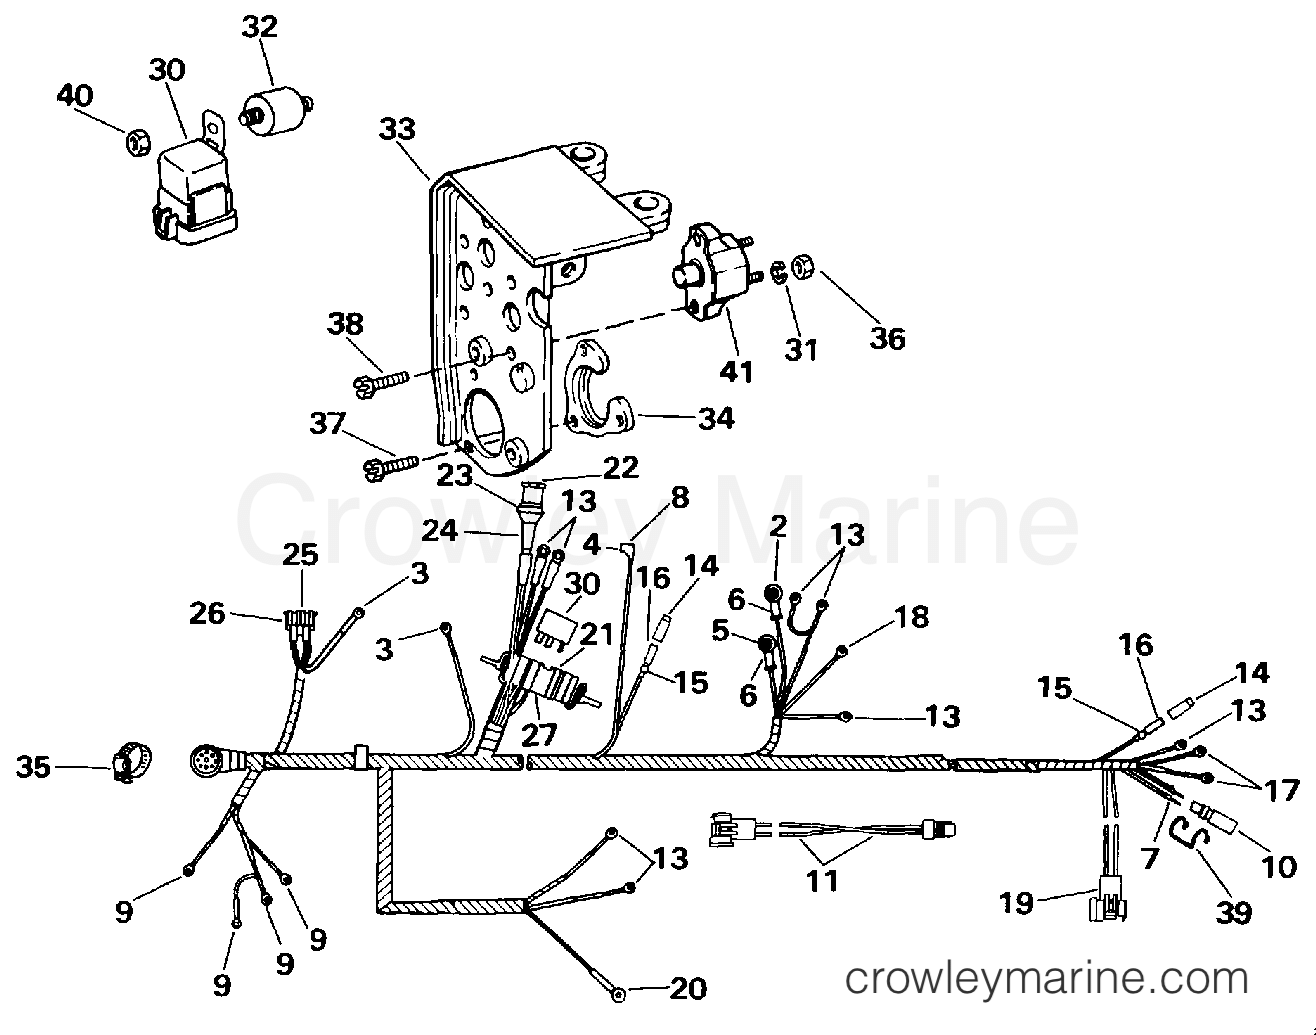 hight resolution of 1994 omc stern drive 4 3 432acmmda engine wire harness shift module section